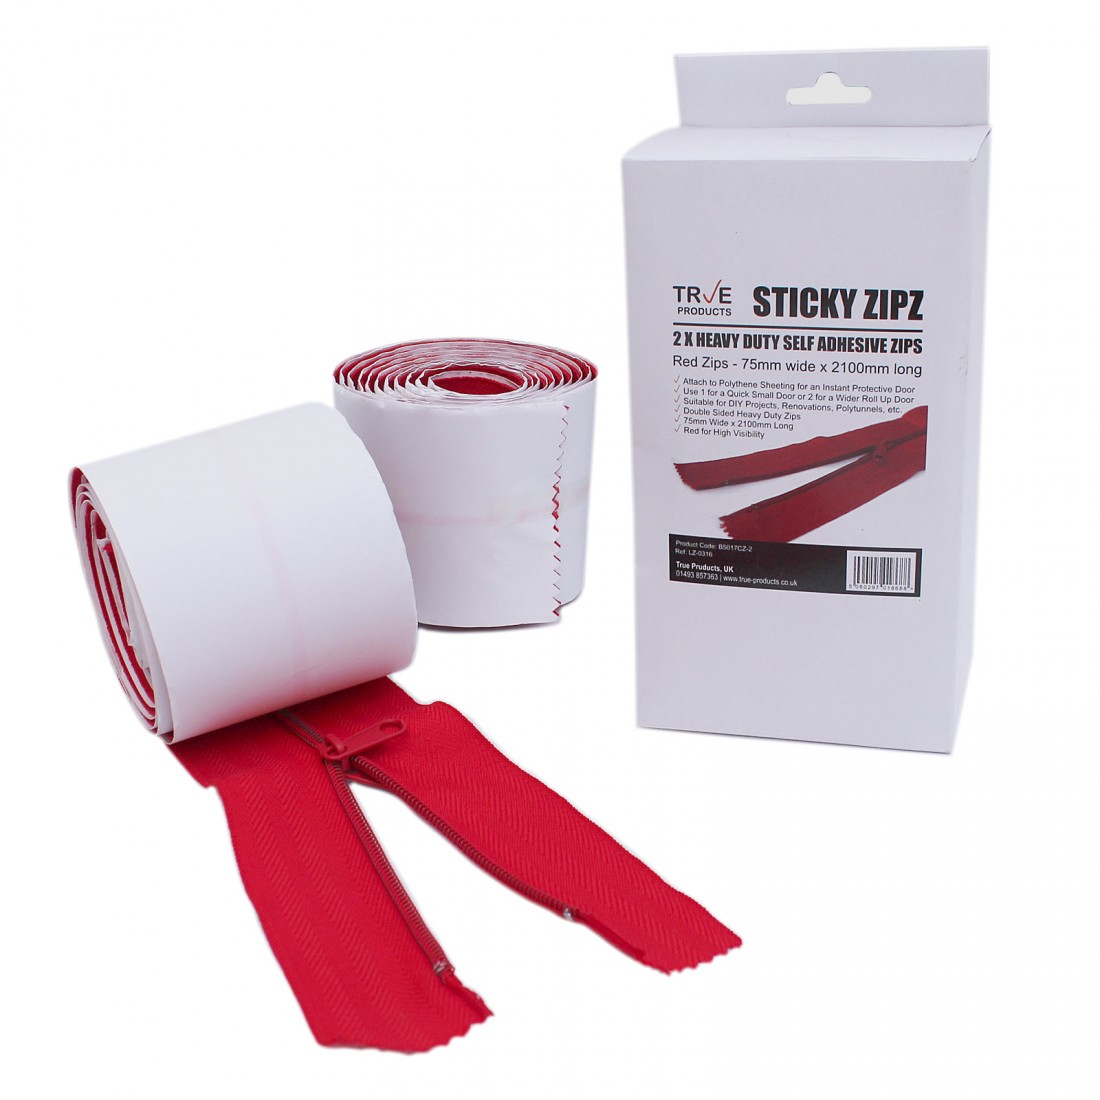 2 Heavy Duty Self Adhesive Zips - 2100mm Long